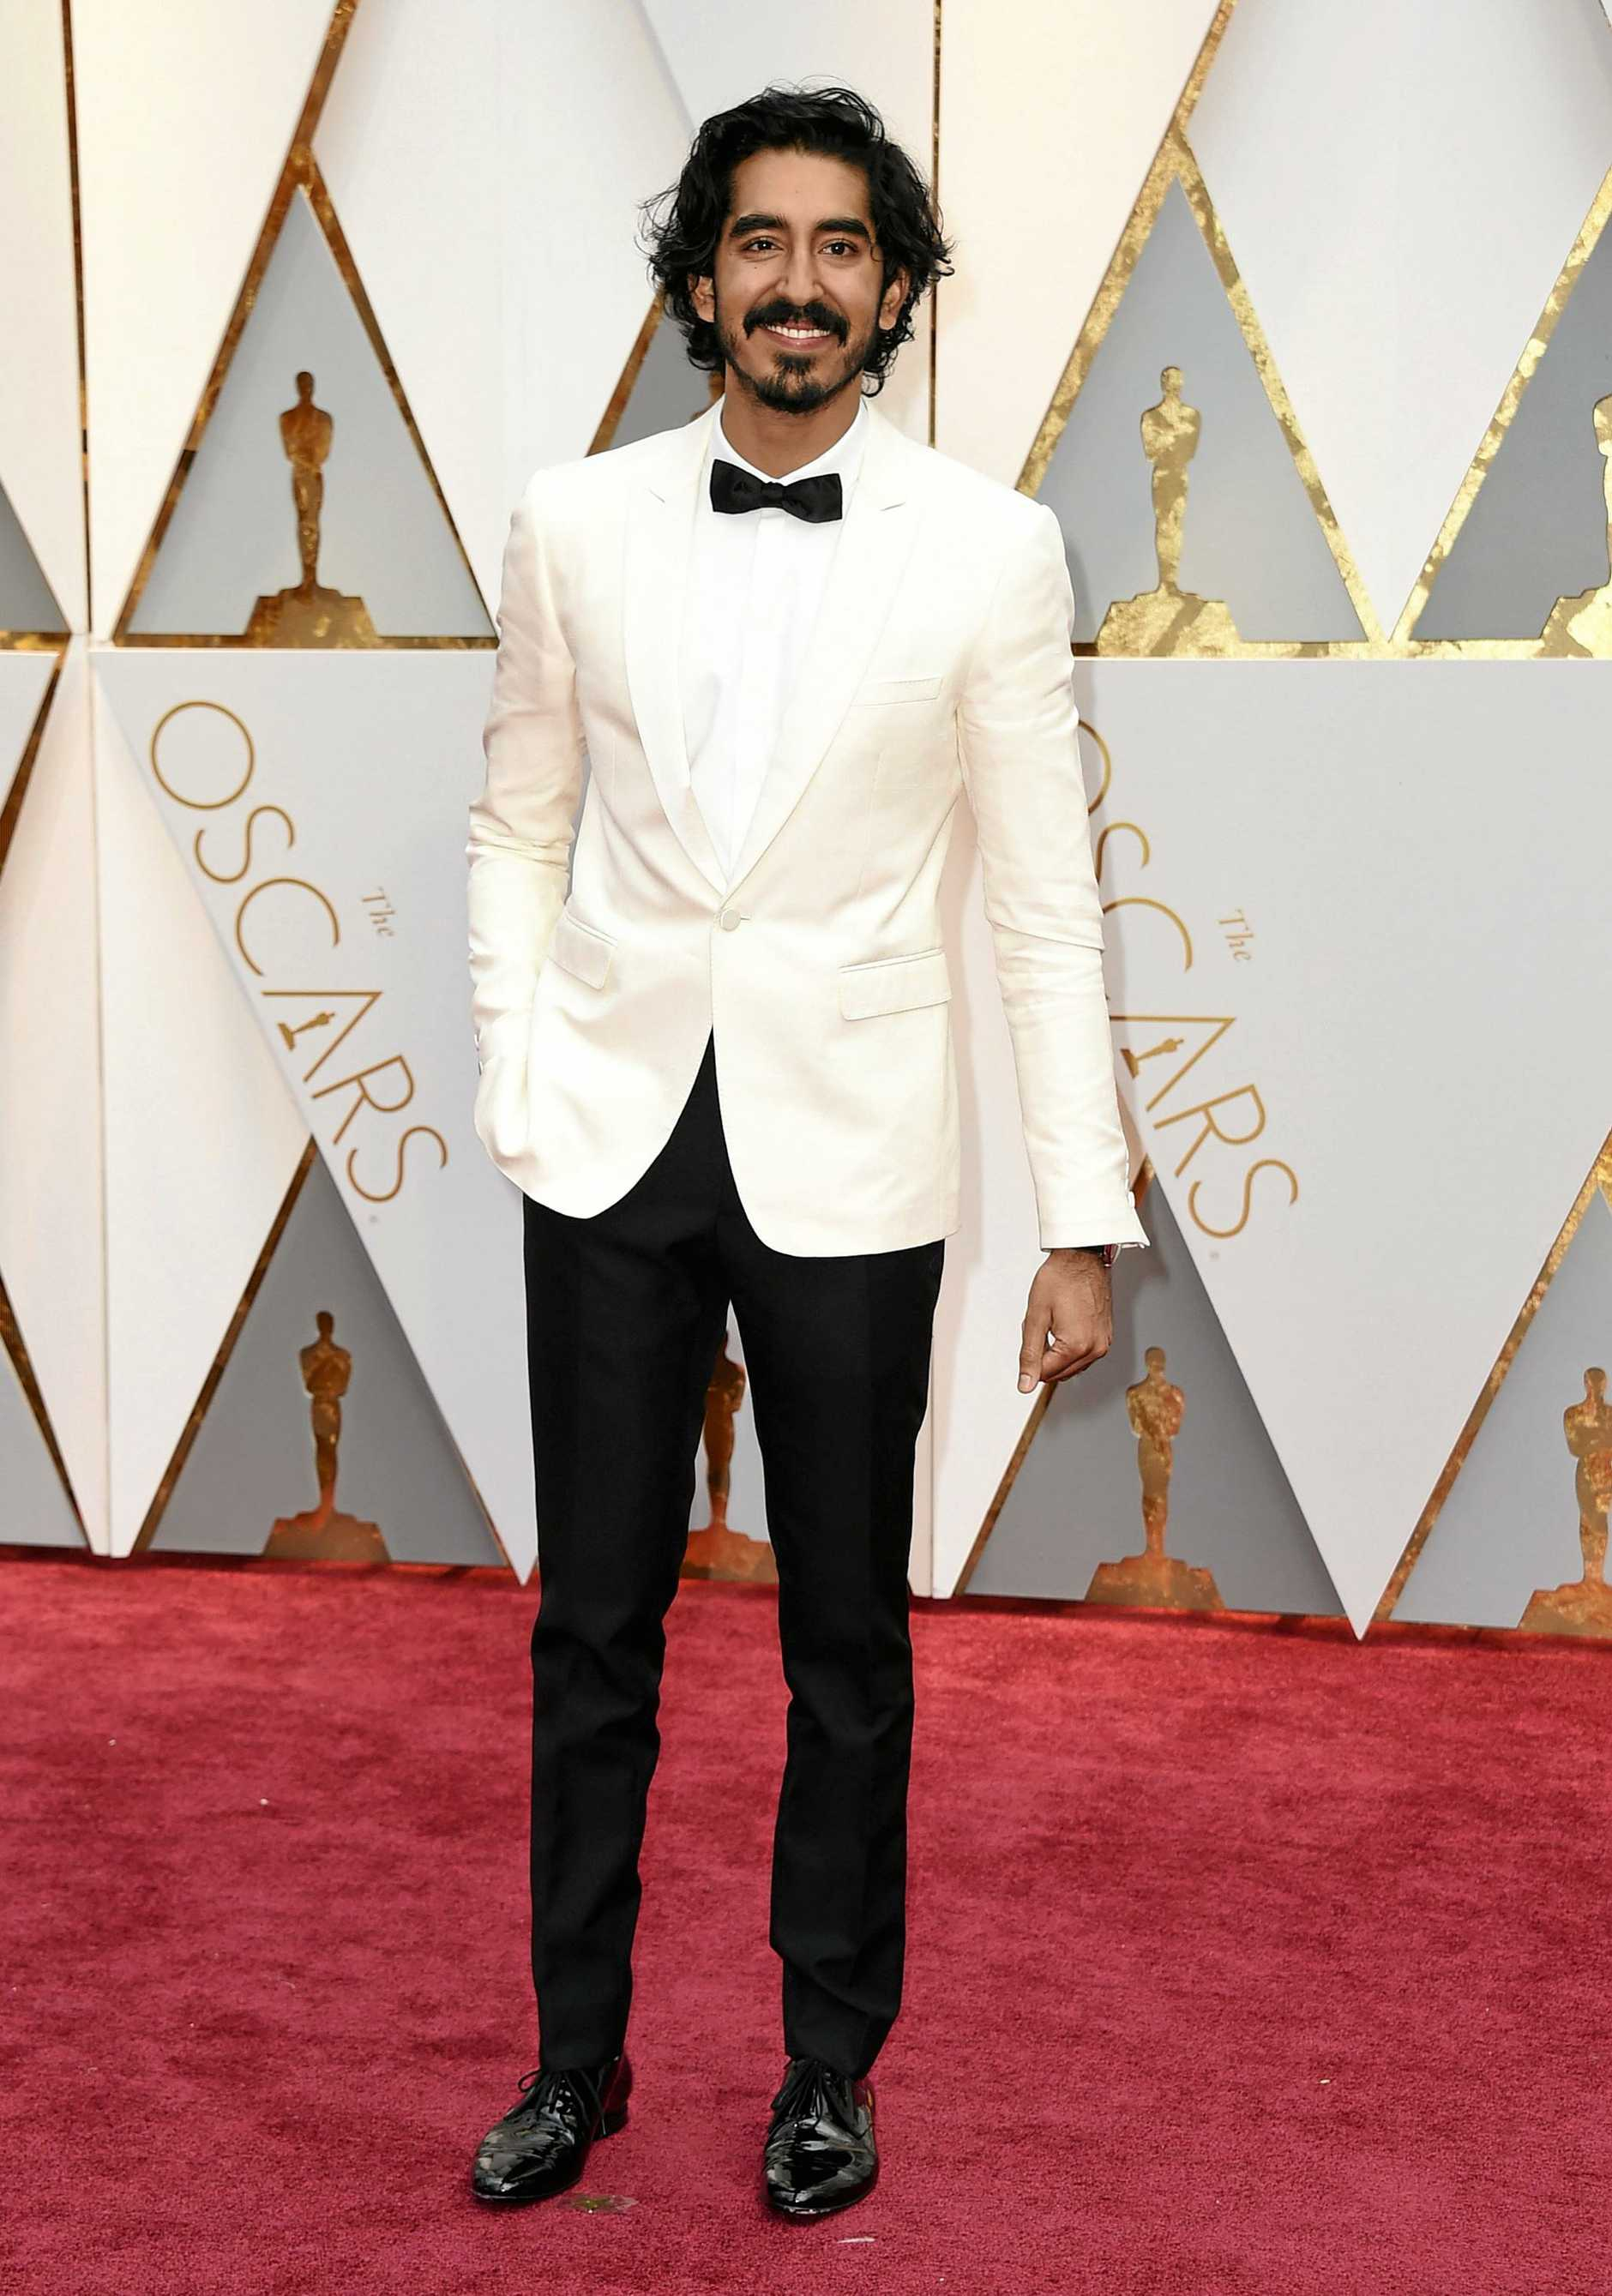 Dev Patel arrives at the Oscars on Sunday, Feb. 26, 2017, at the Dolby Theatre in Los Angeles.